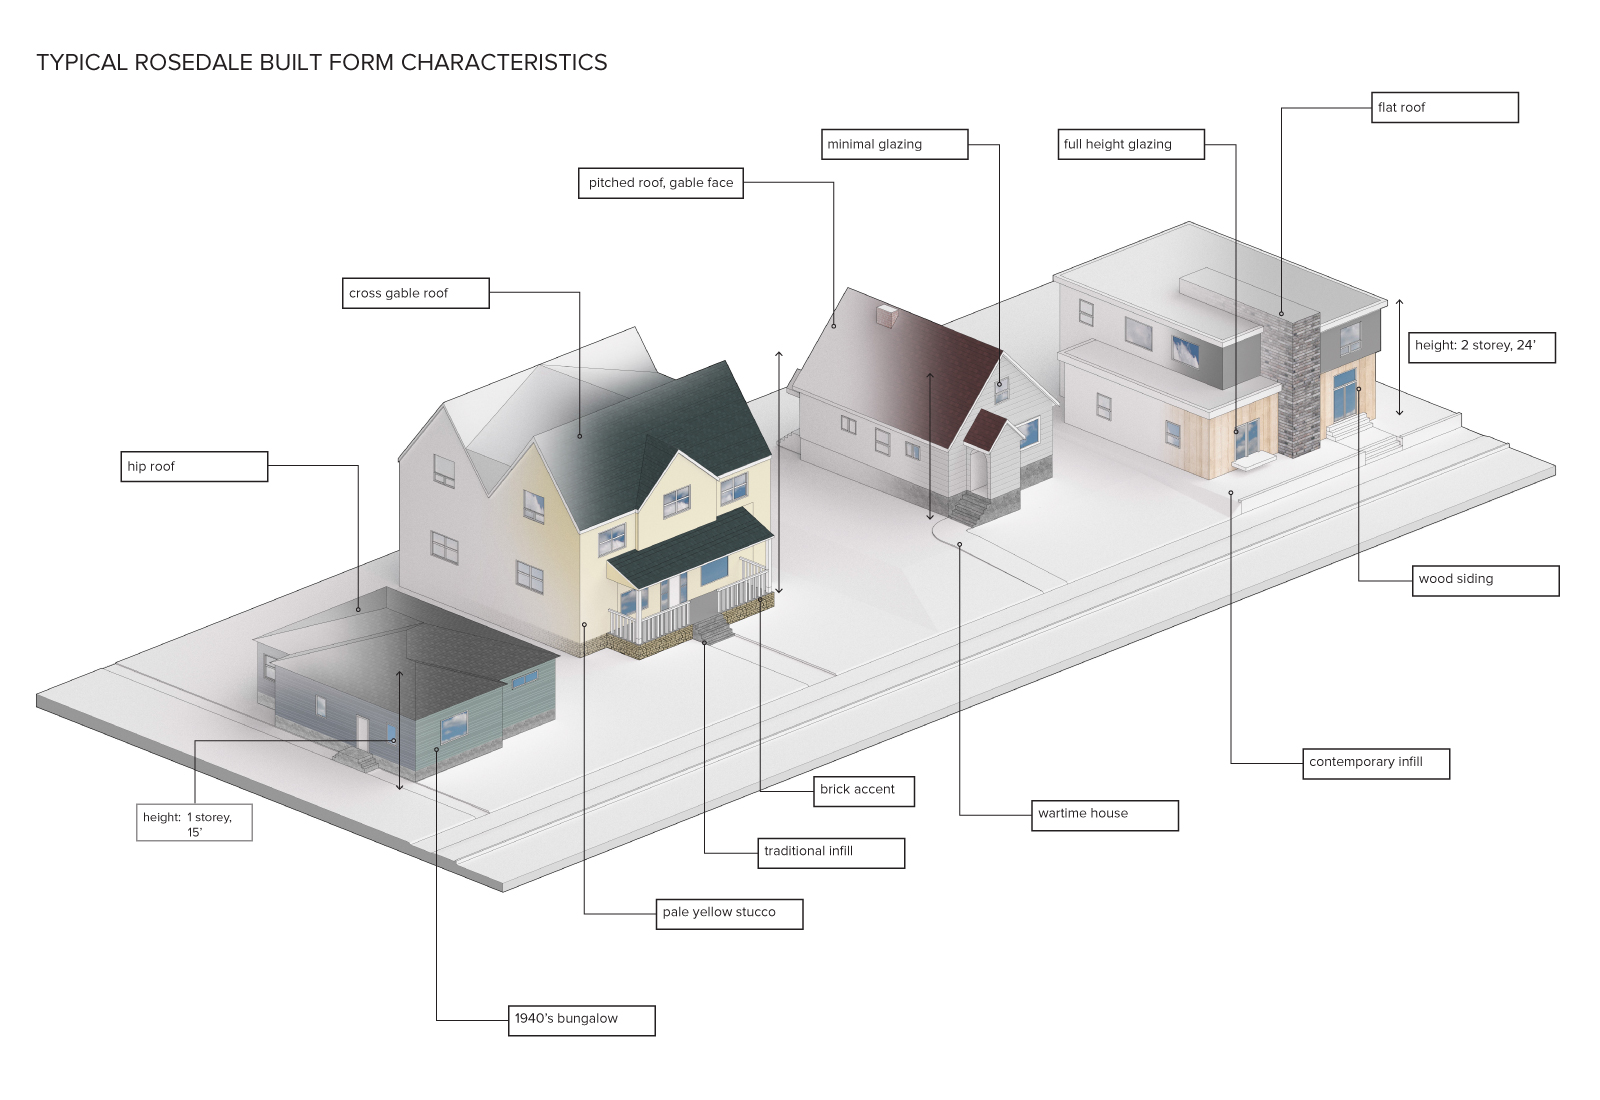 Images of different types of roofing, housing, window glazing, height, sizing, and accents which are typical of Rosedale.